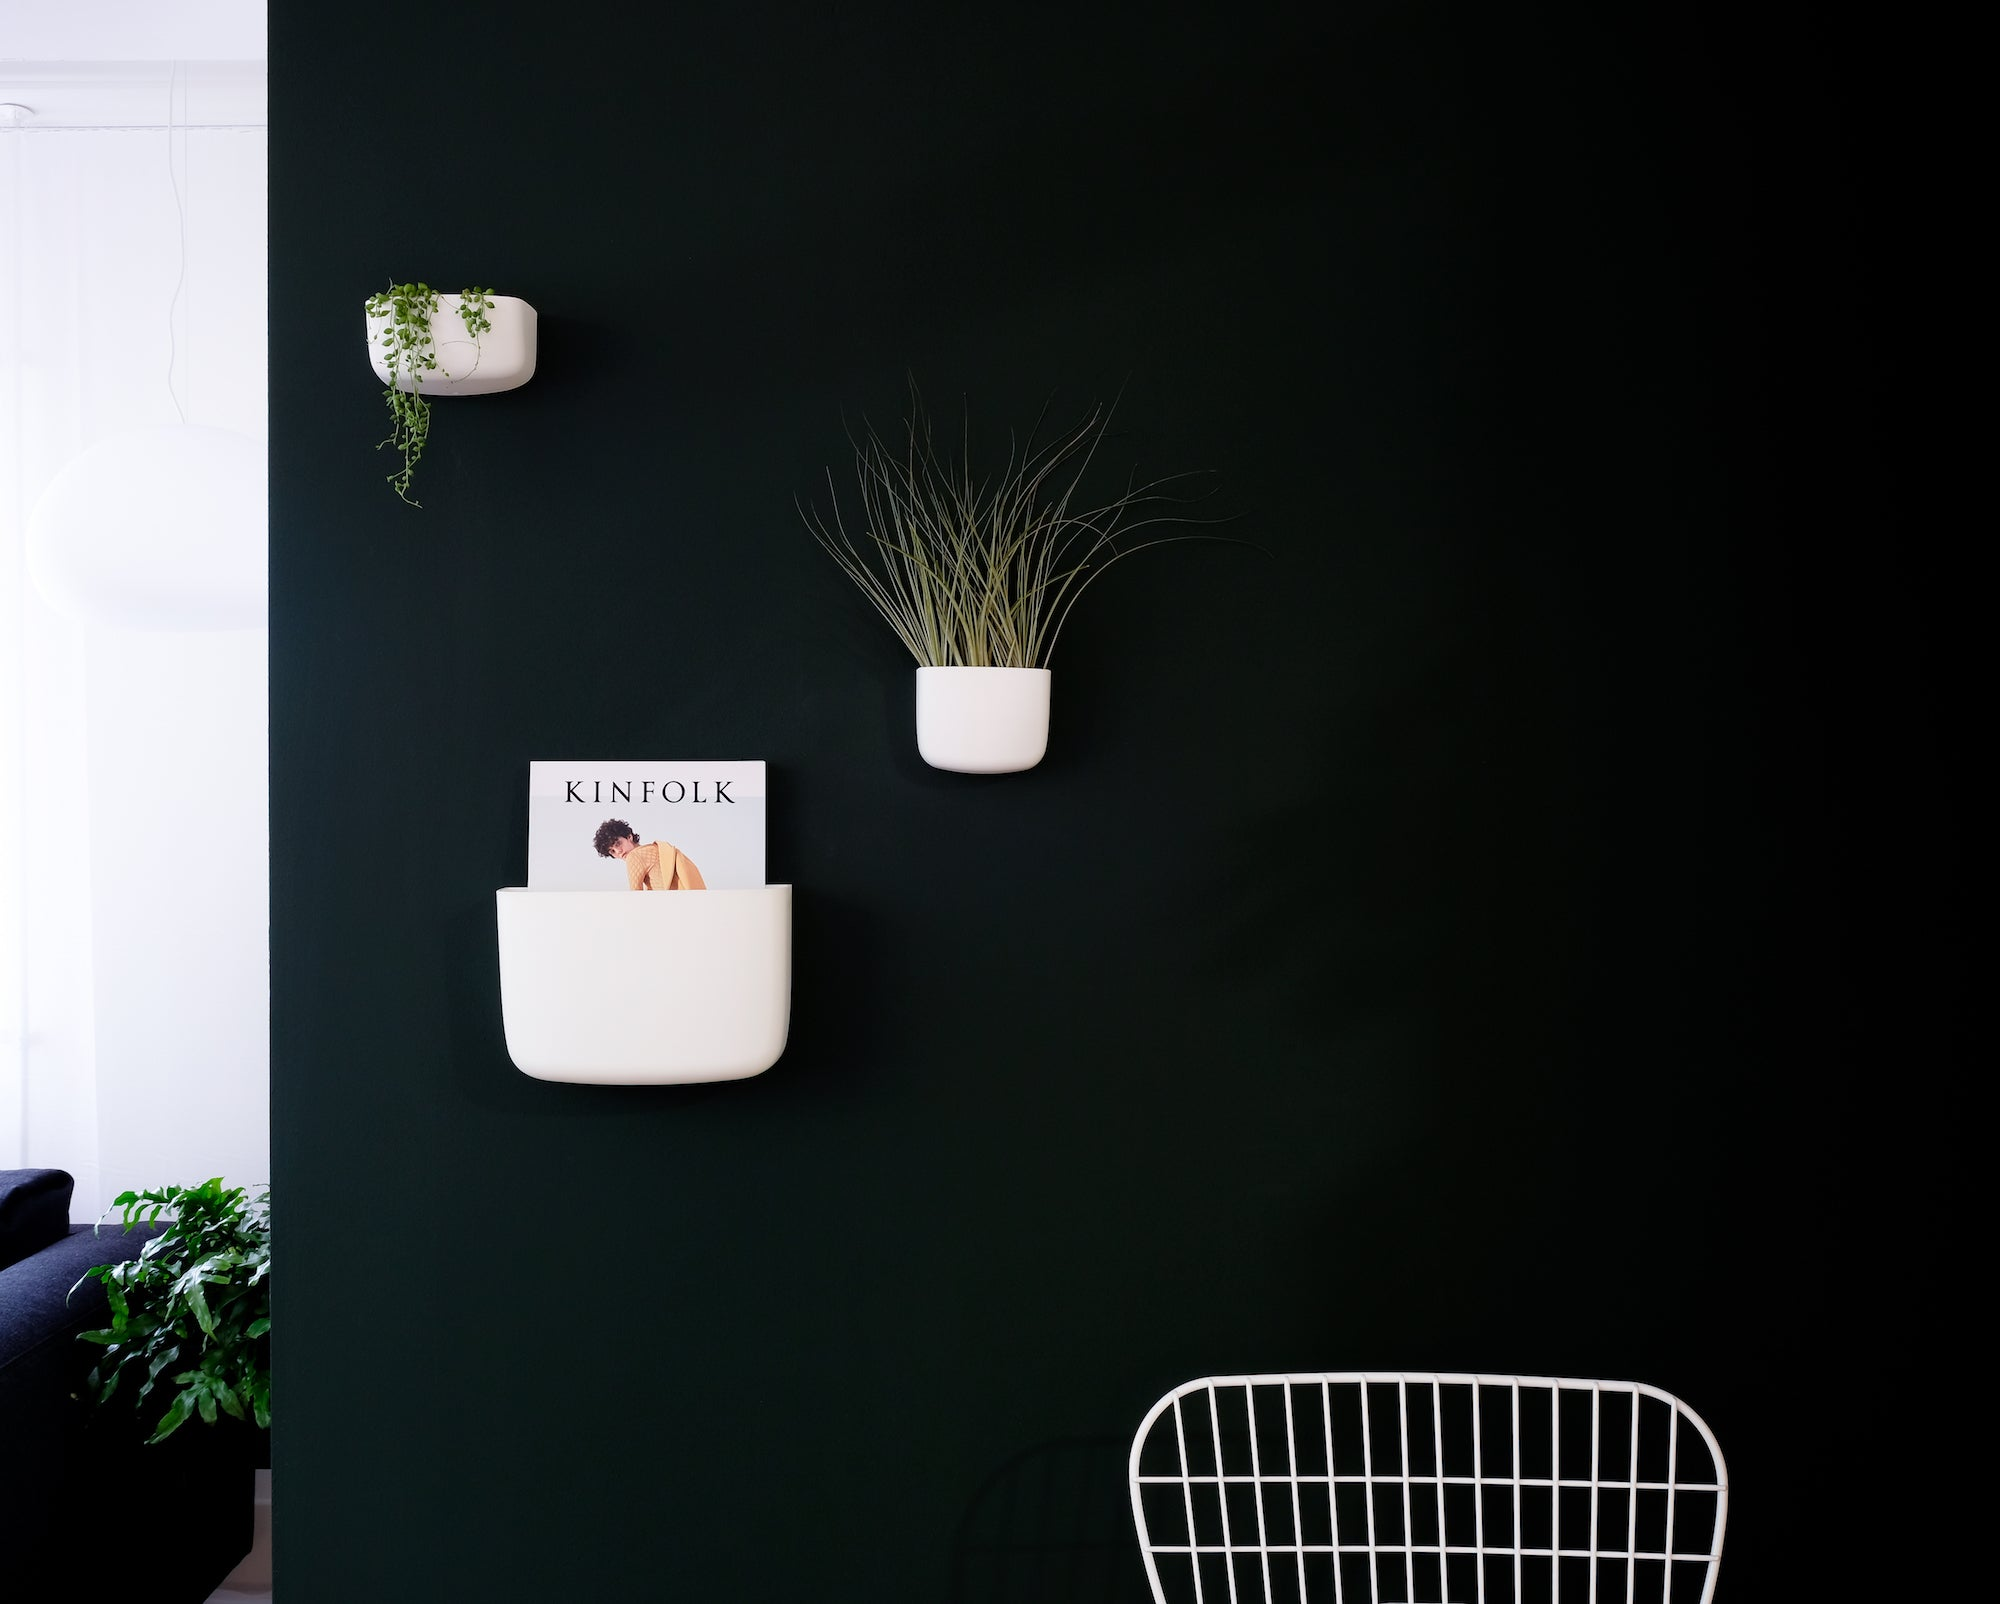 Green wall crioll.design showroom